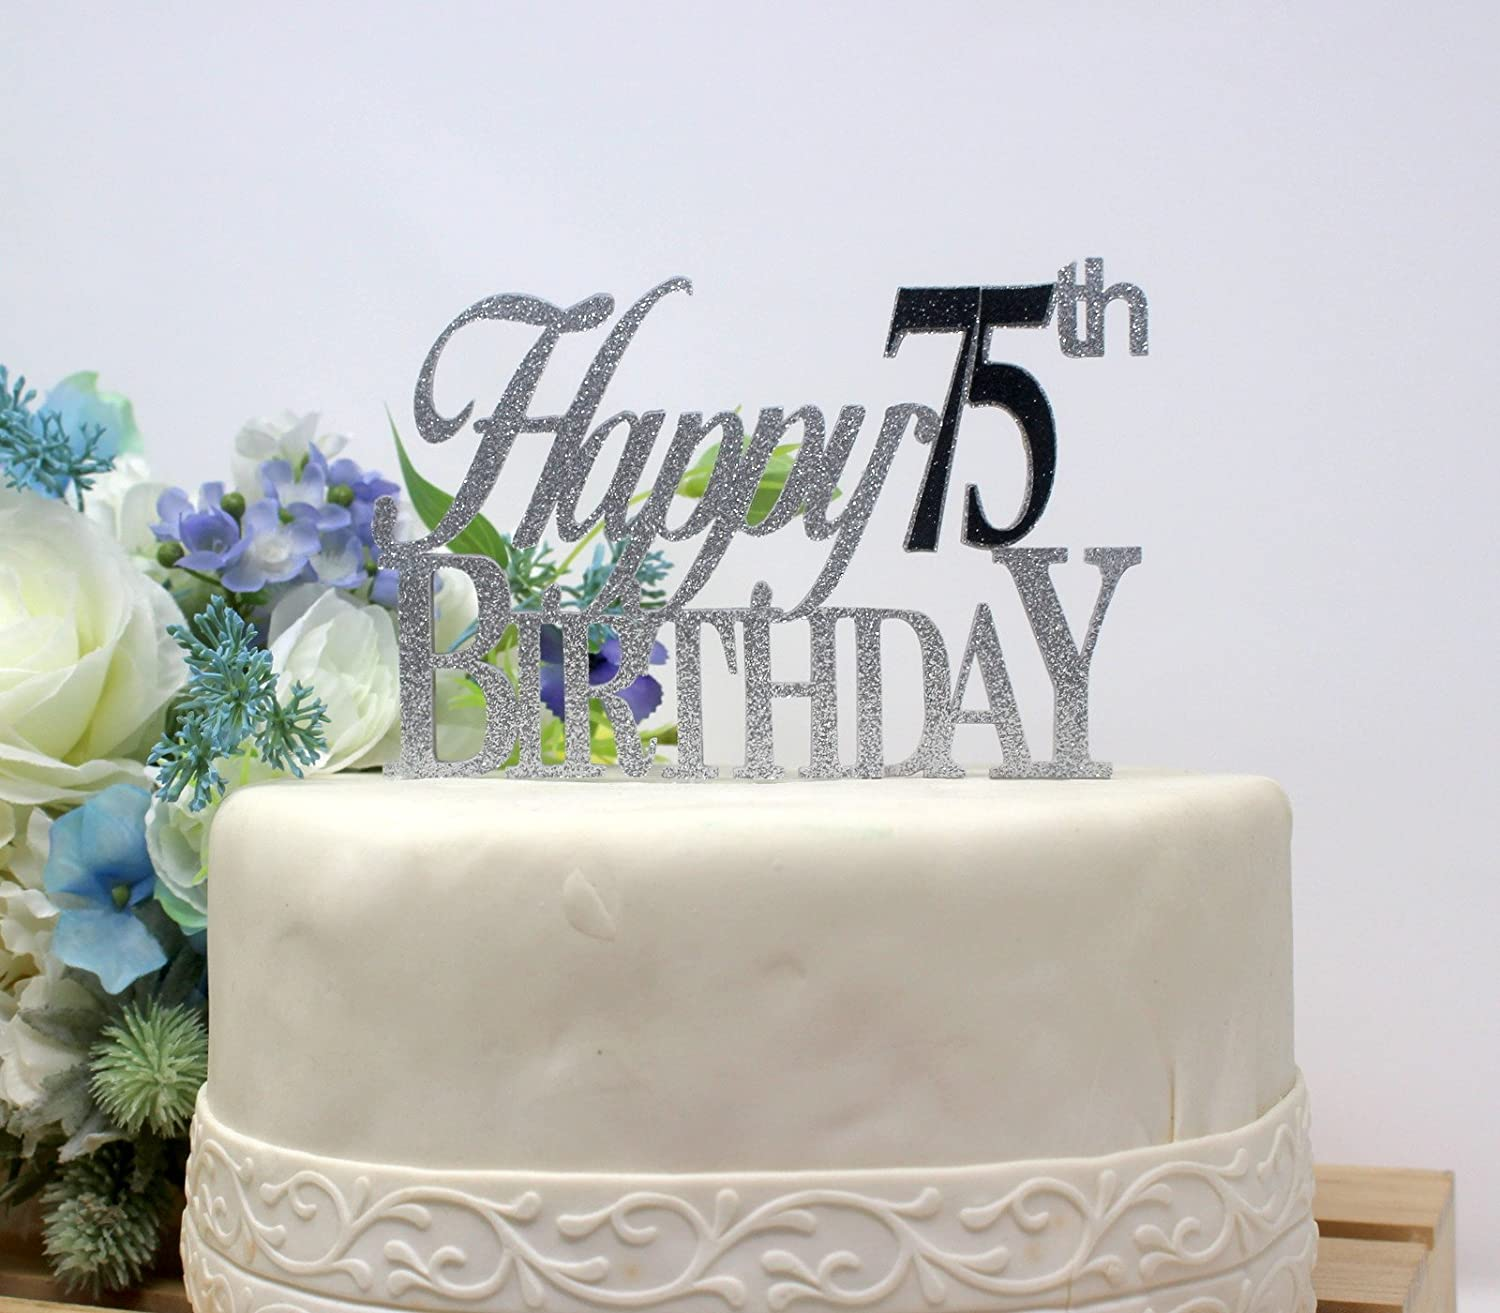 All About Details Black Happy 75th Birthday Cake Topper AX AY ABHI 72638